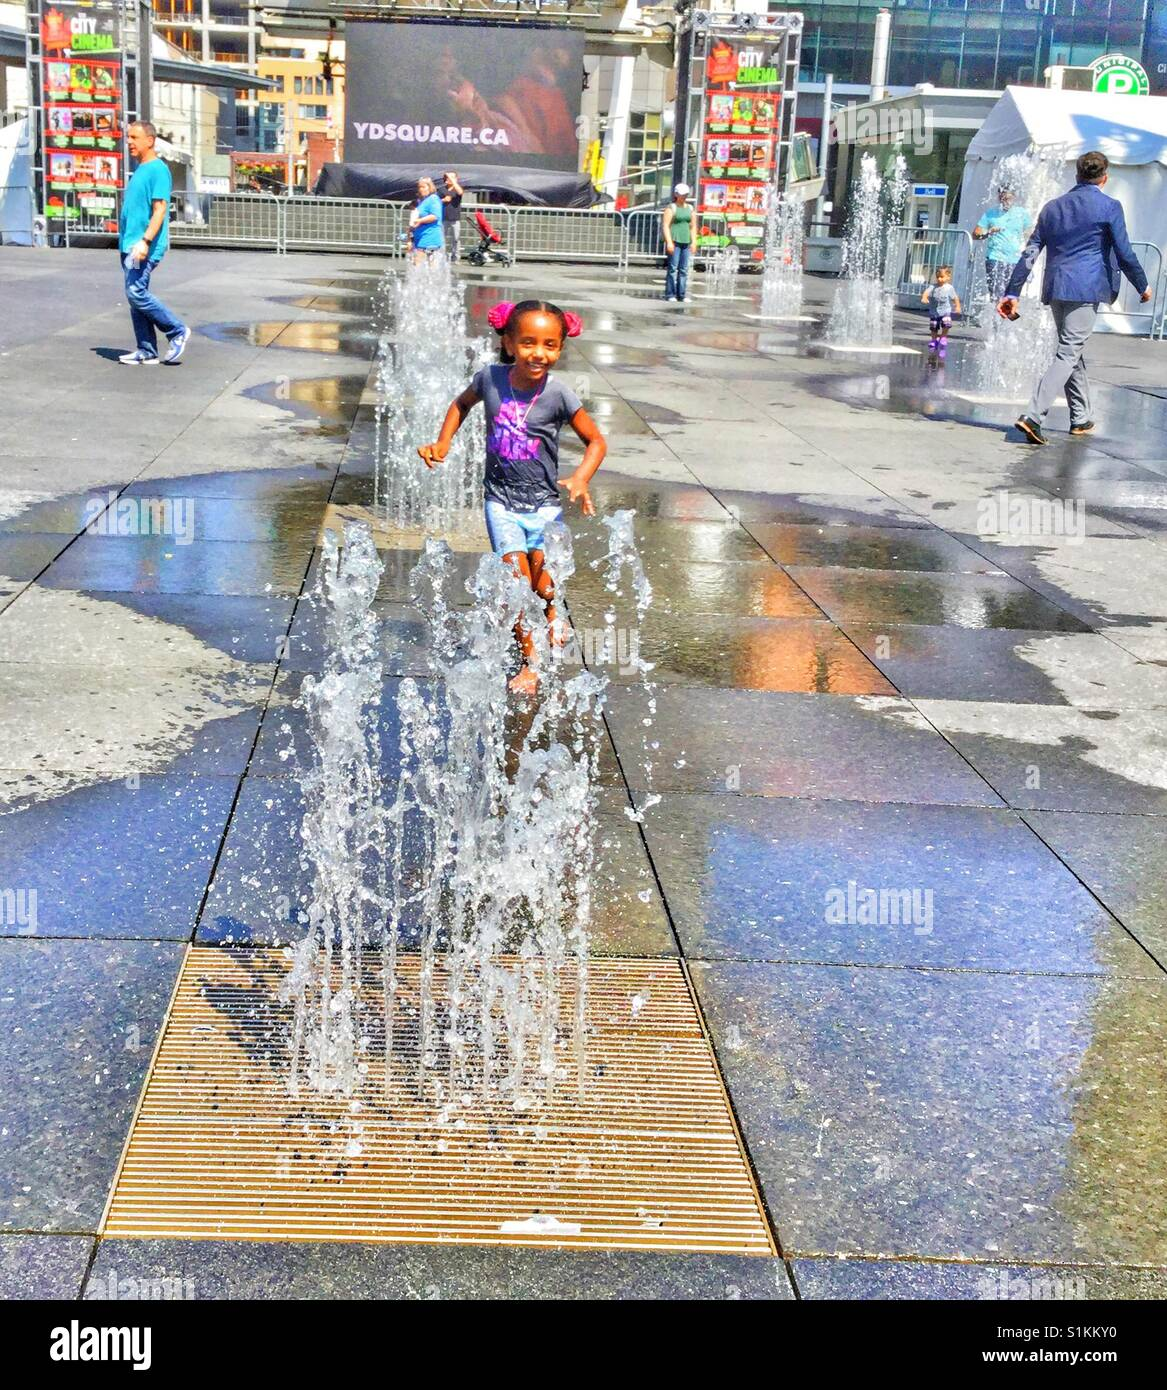 Fountains at Yonge Dundas Square in Toronto. - Stock Image